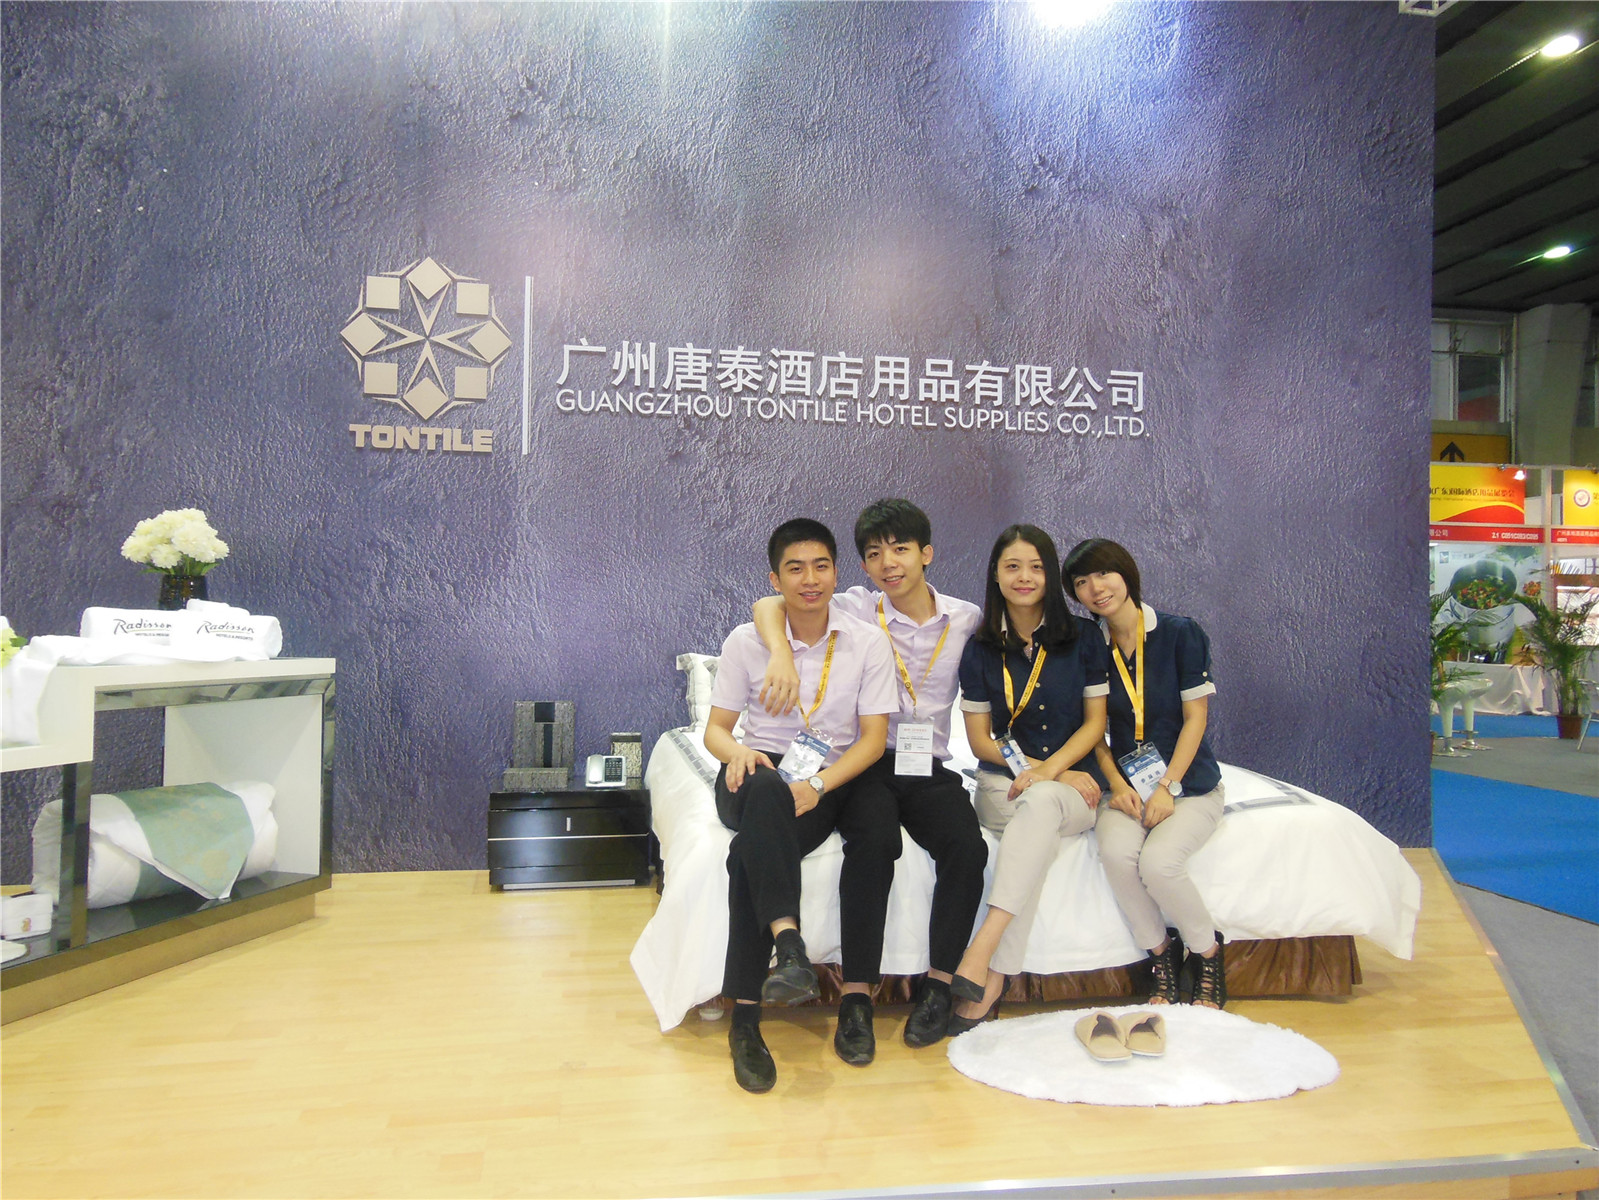 Guangzhou pazhou exhibition-Tontile Team 2